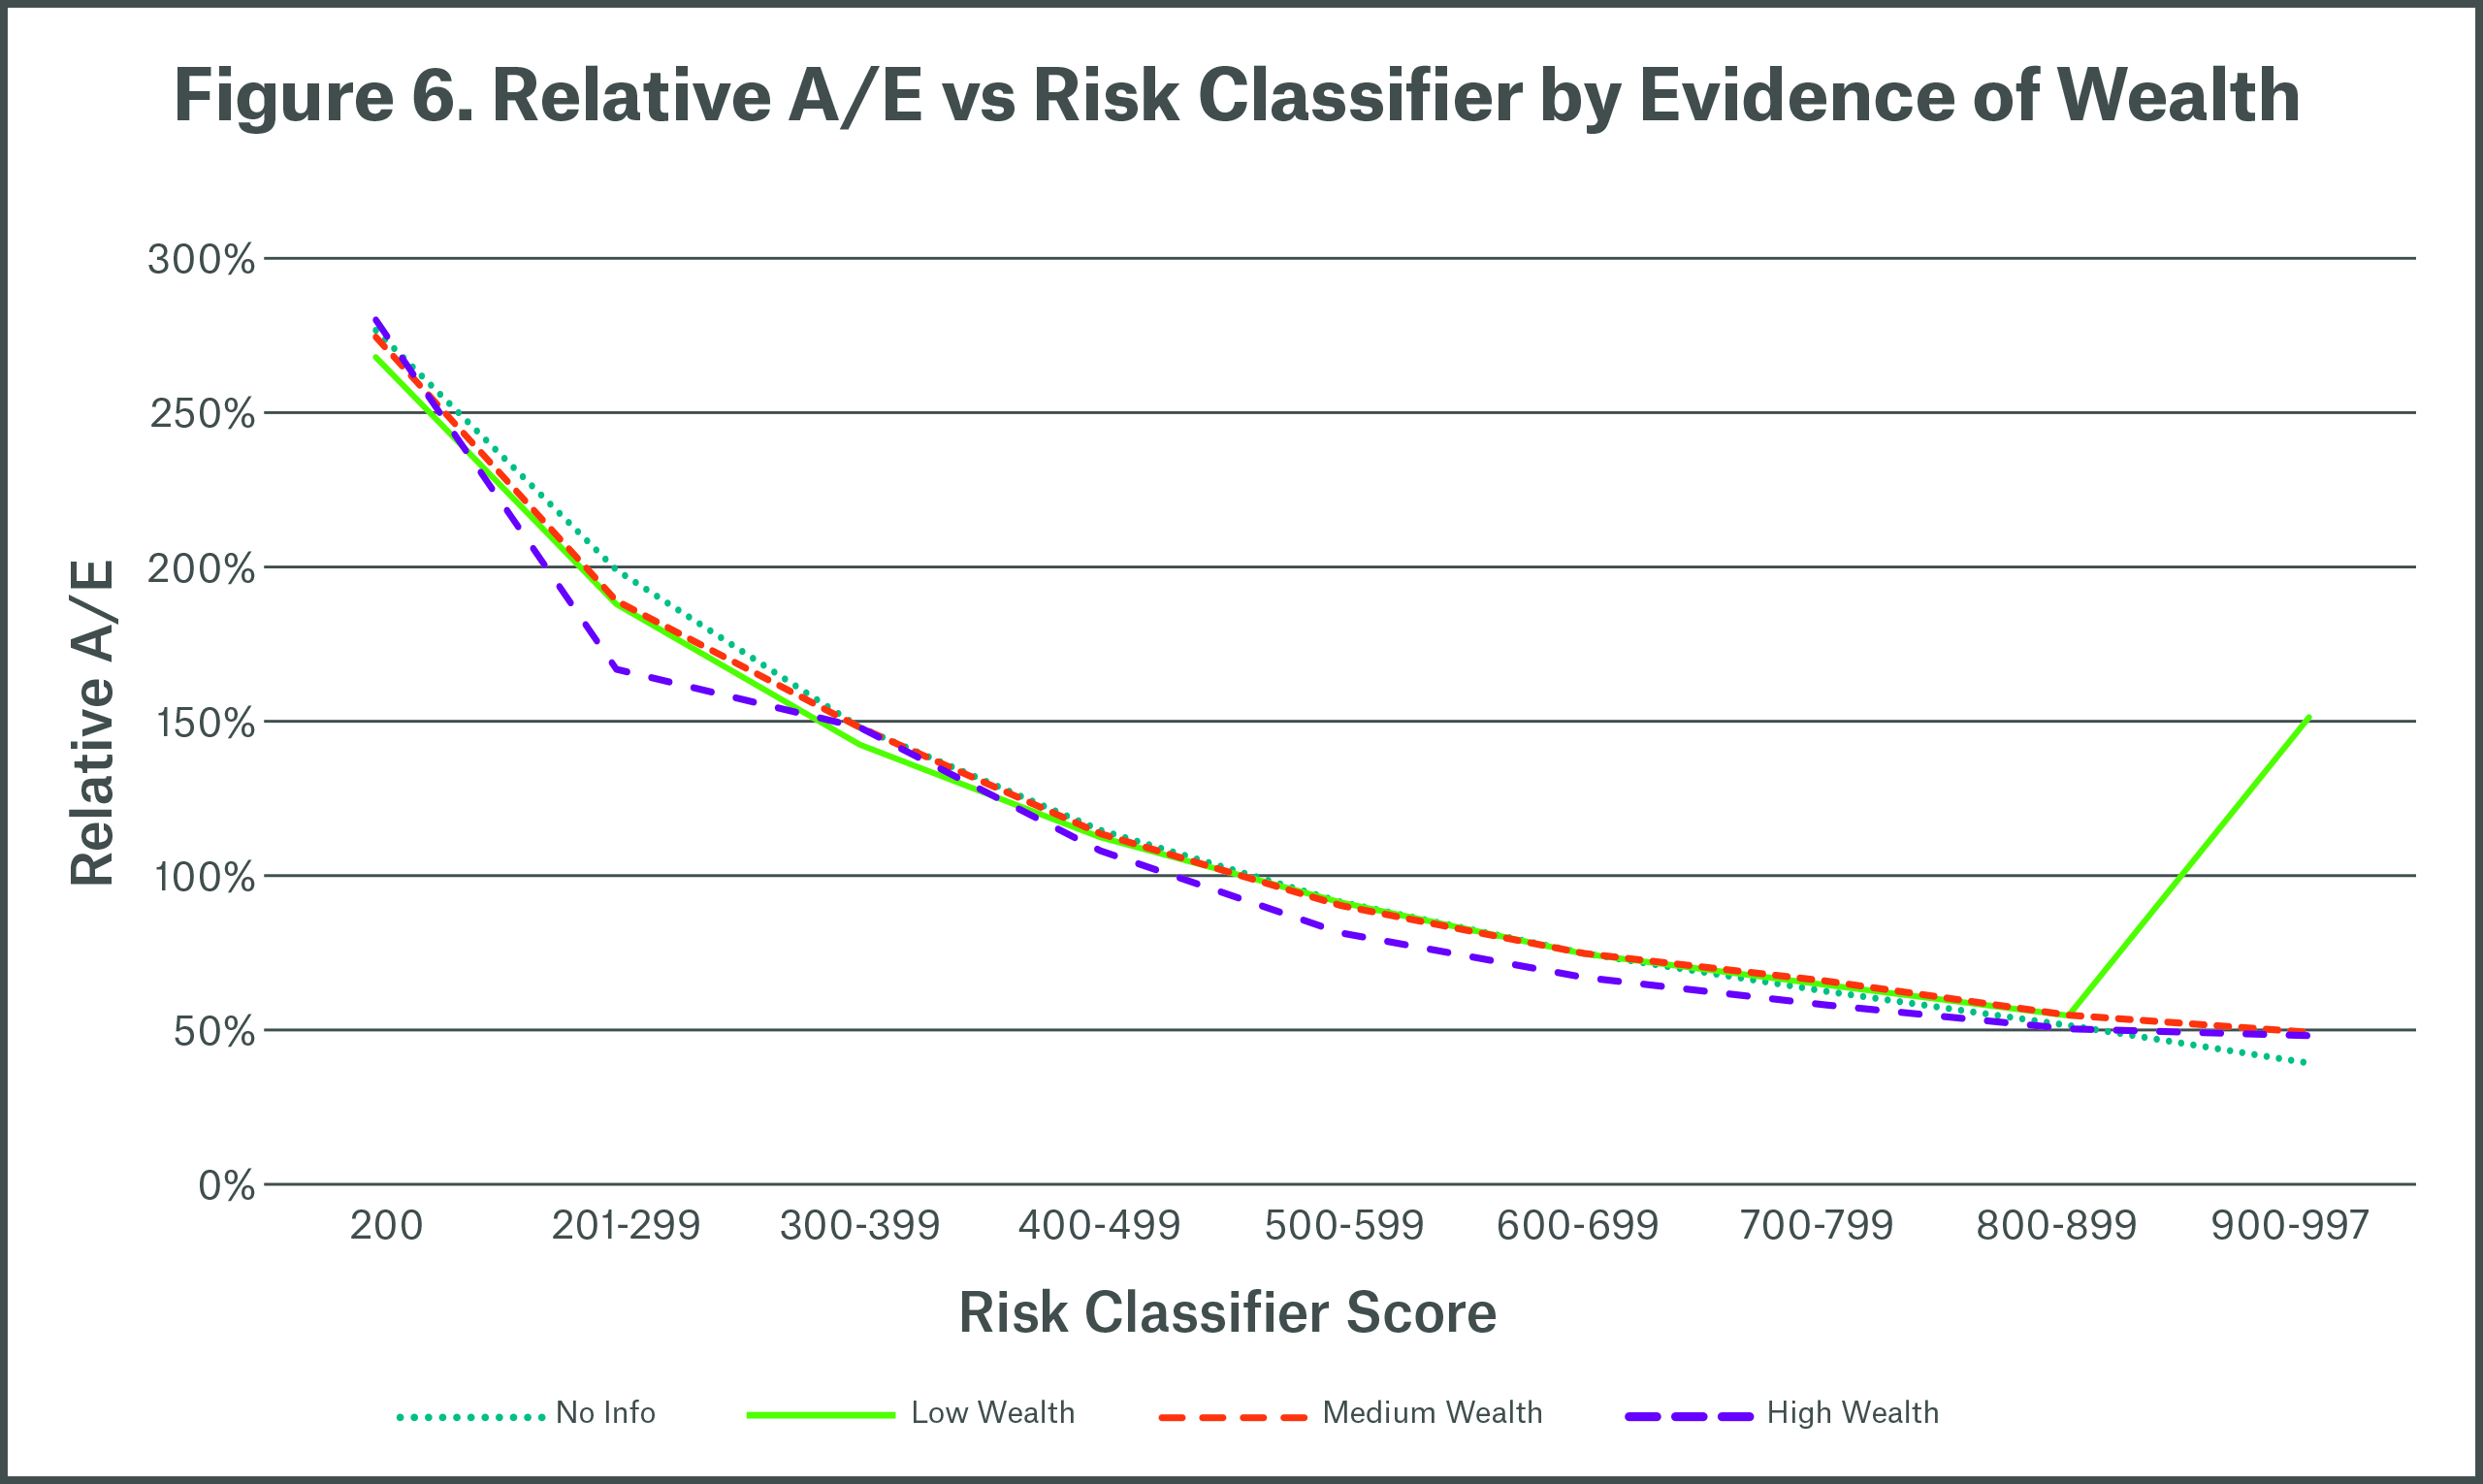 Figure 6 Relative A/E vs Risk Classifier by Evidence of Wealth